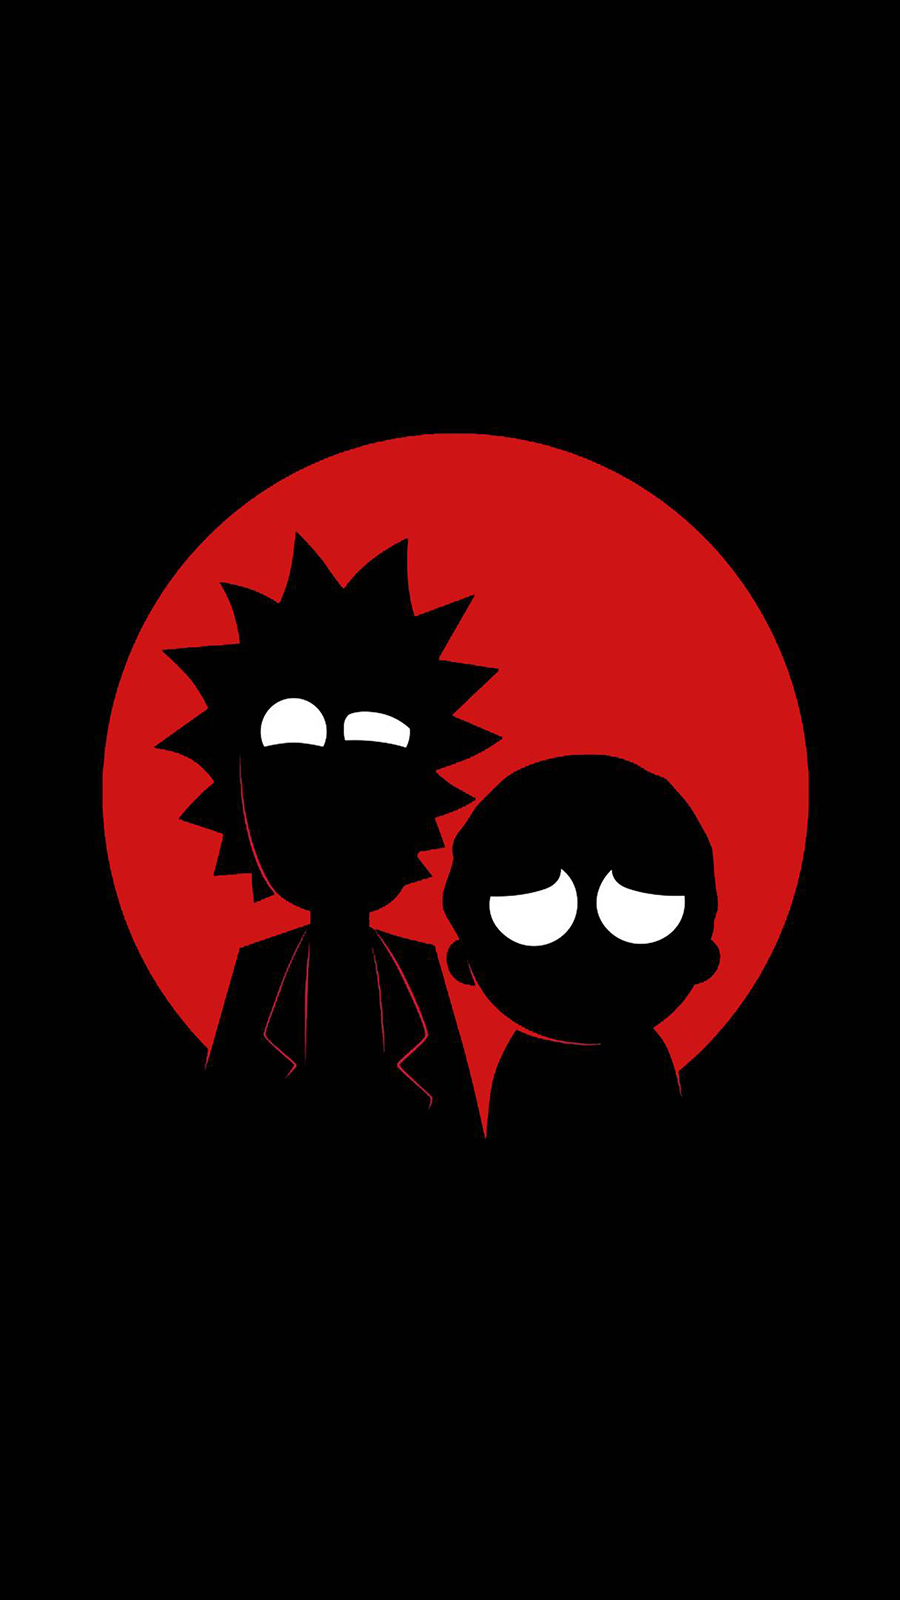 Rick and Morty Bio Profile Wallpapers Now Download For Your Device